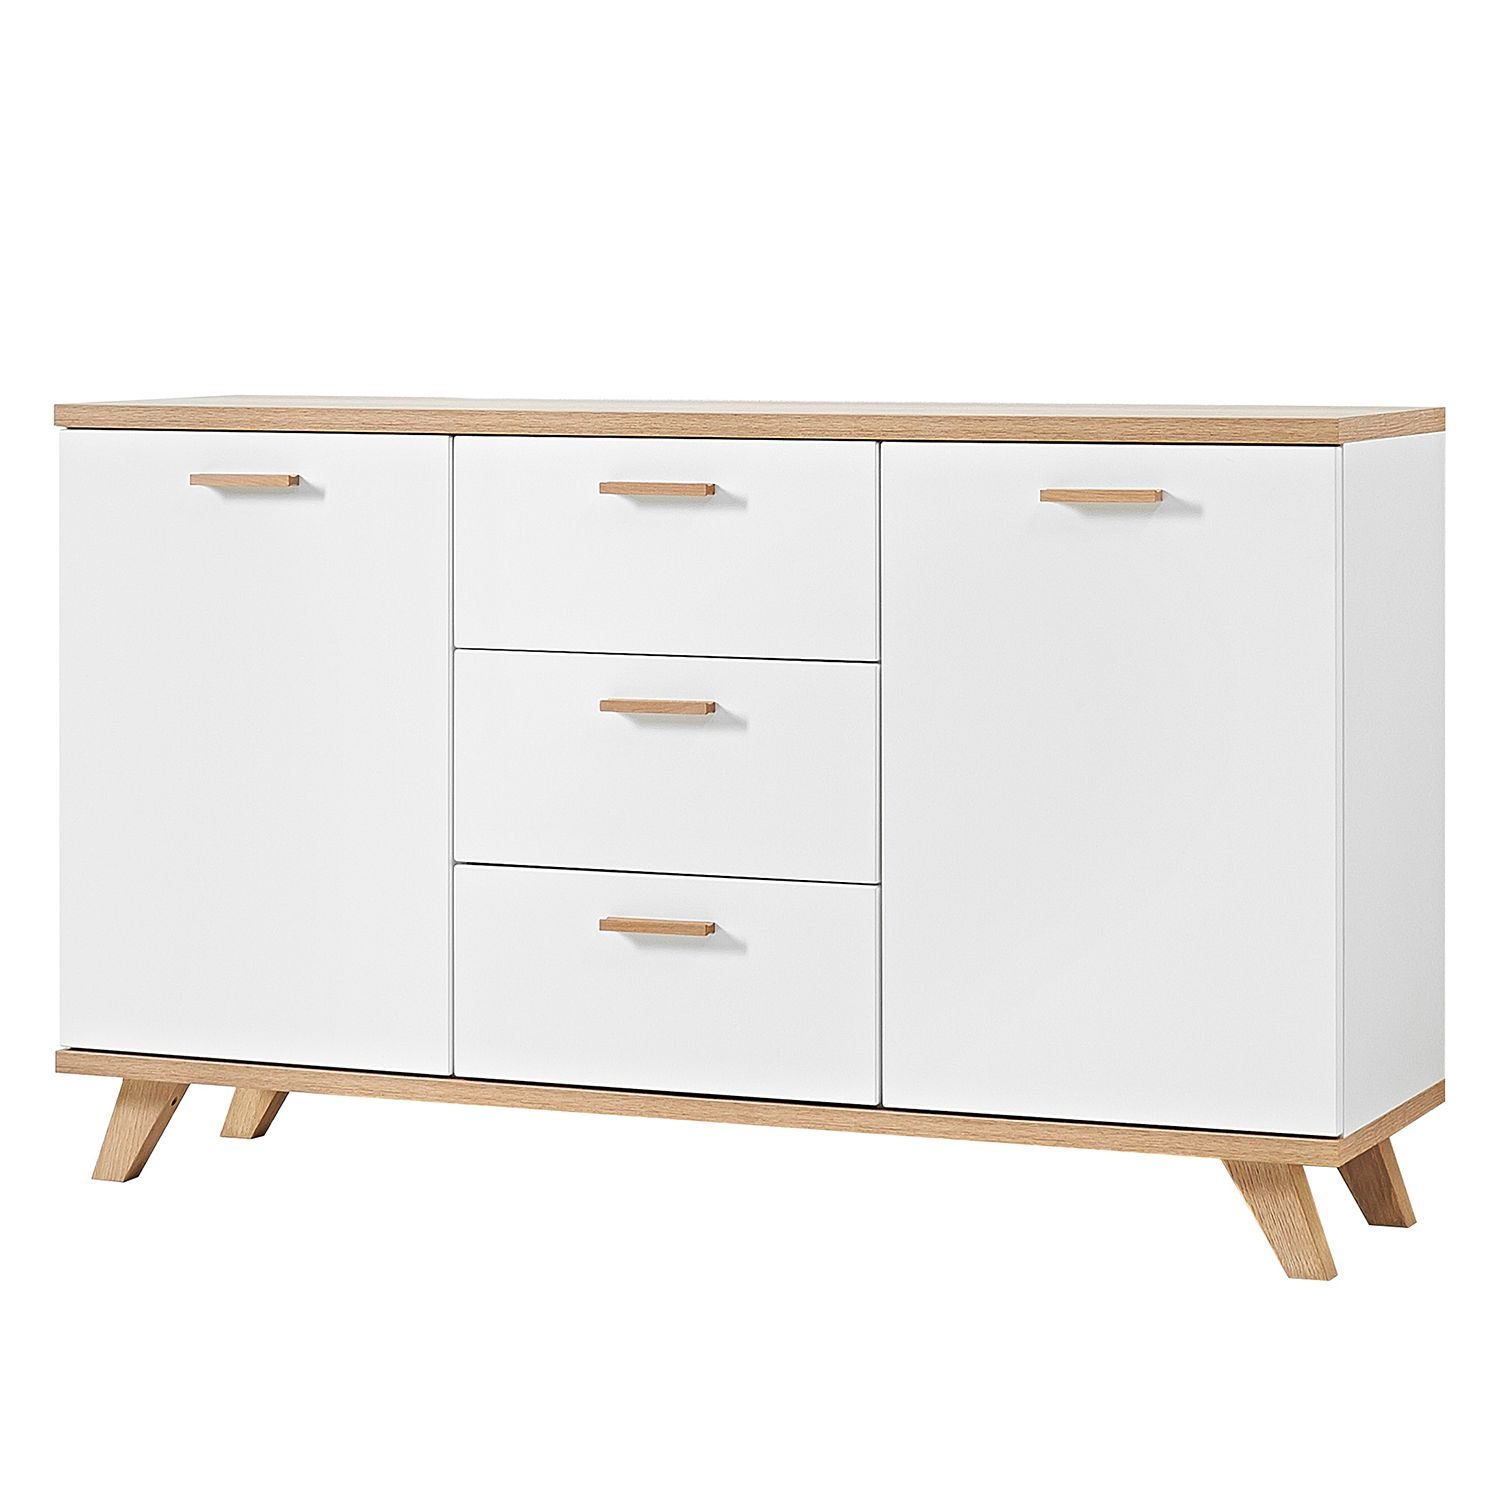 Credenza Neston I, Germania